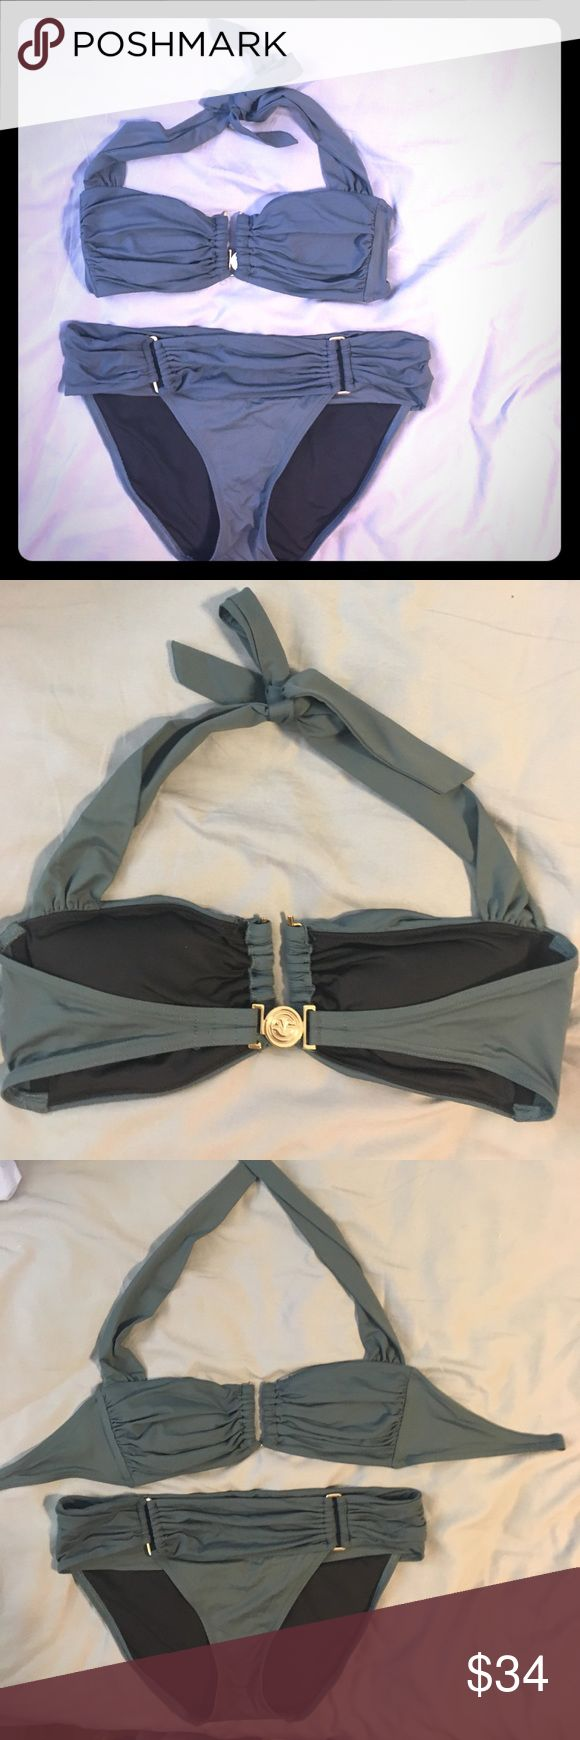 Victoria's Secret bikini size large Army green. Gold hardware with VS logo, bandeau top with tie around neck, each piece is size large tags  have been cut out for comfort, good condition mostly kept in storage, only worn two or three times Victoria's Secret Swim Bikinis